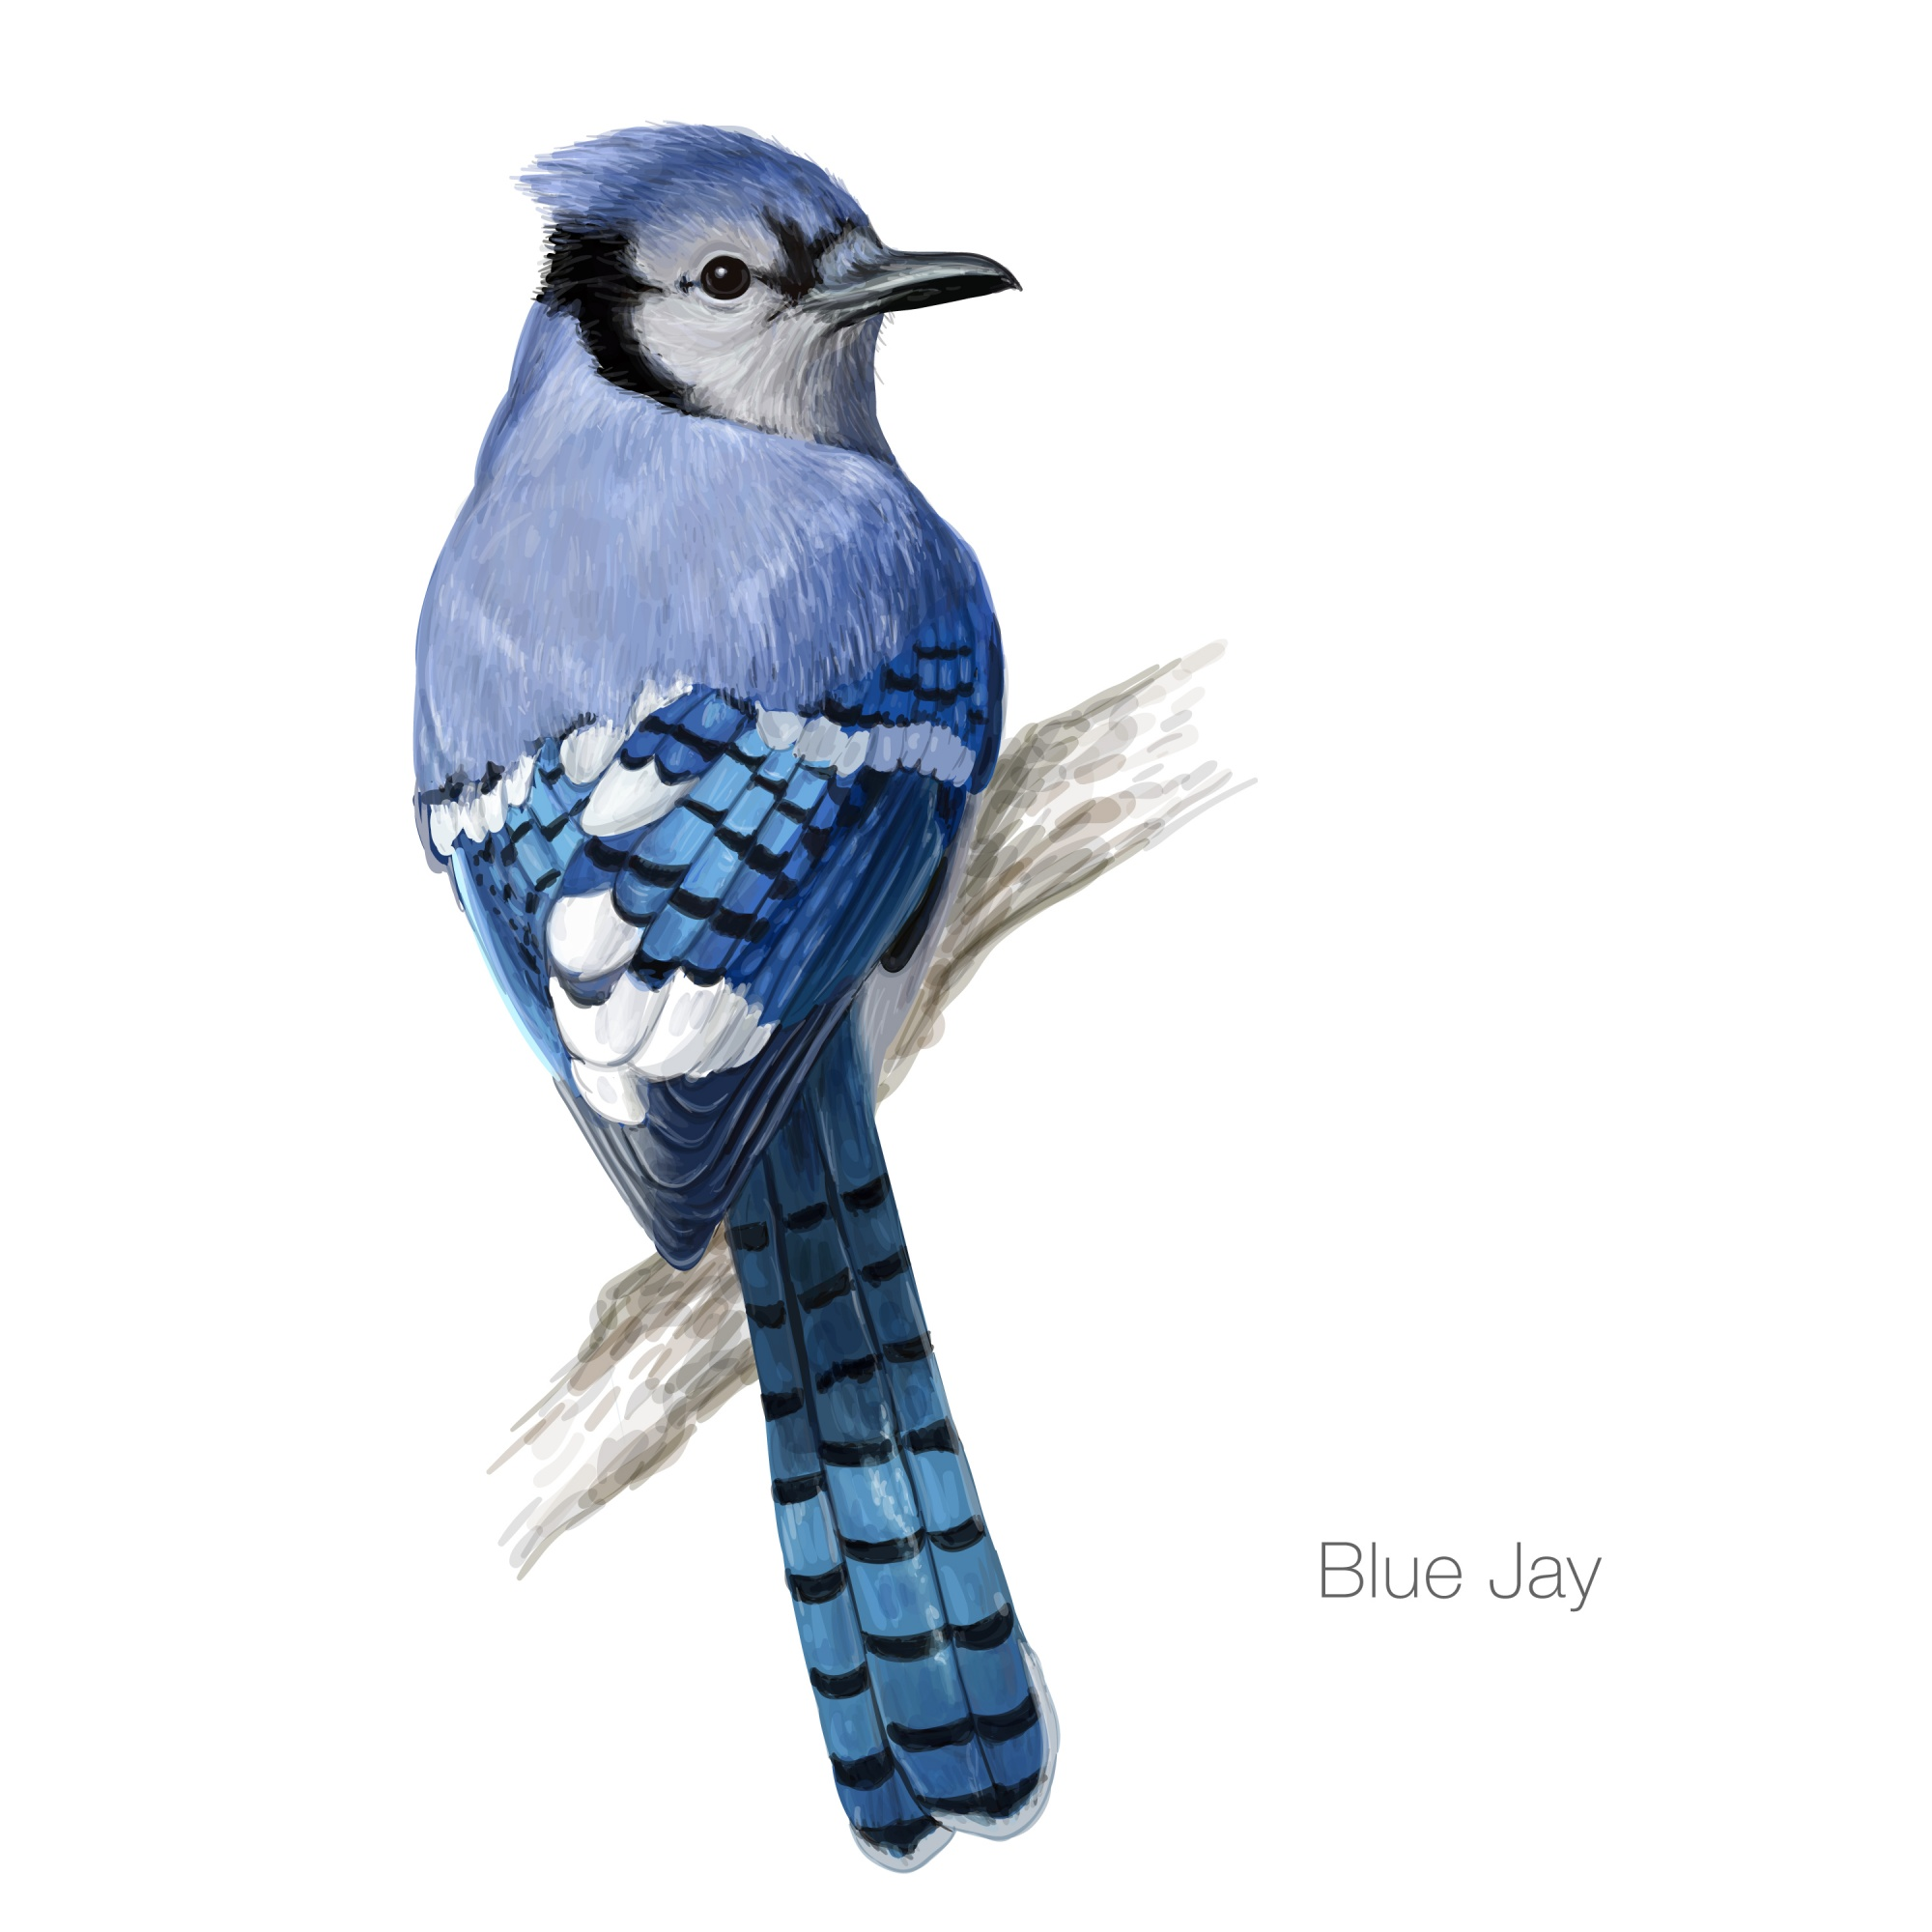 Blaue Jay Vogel Illustration